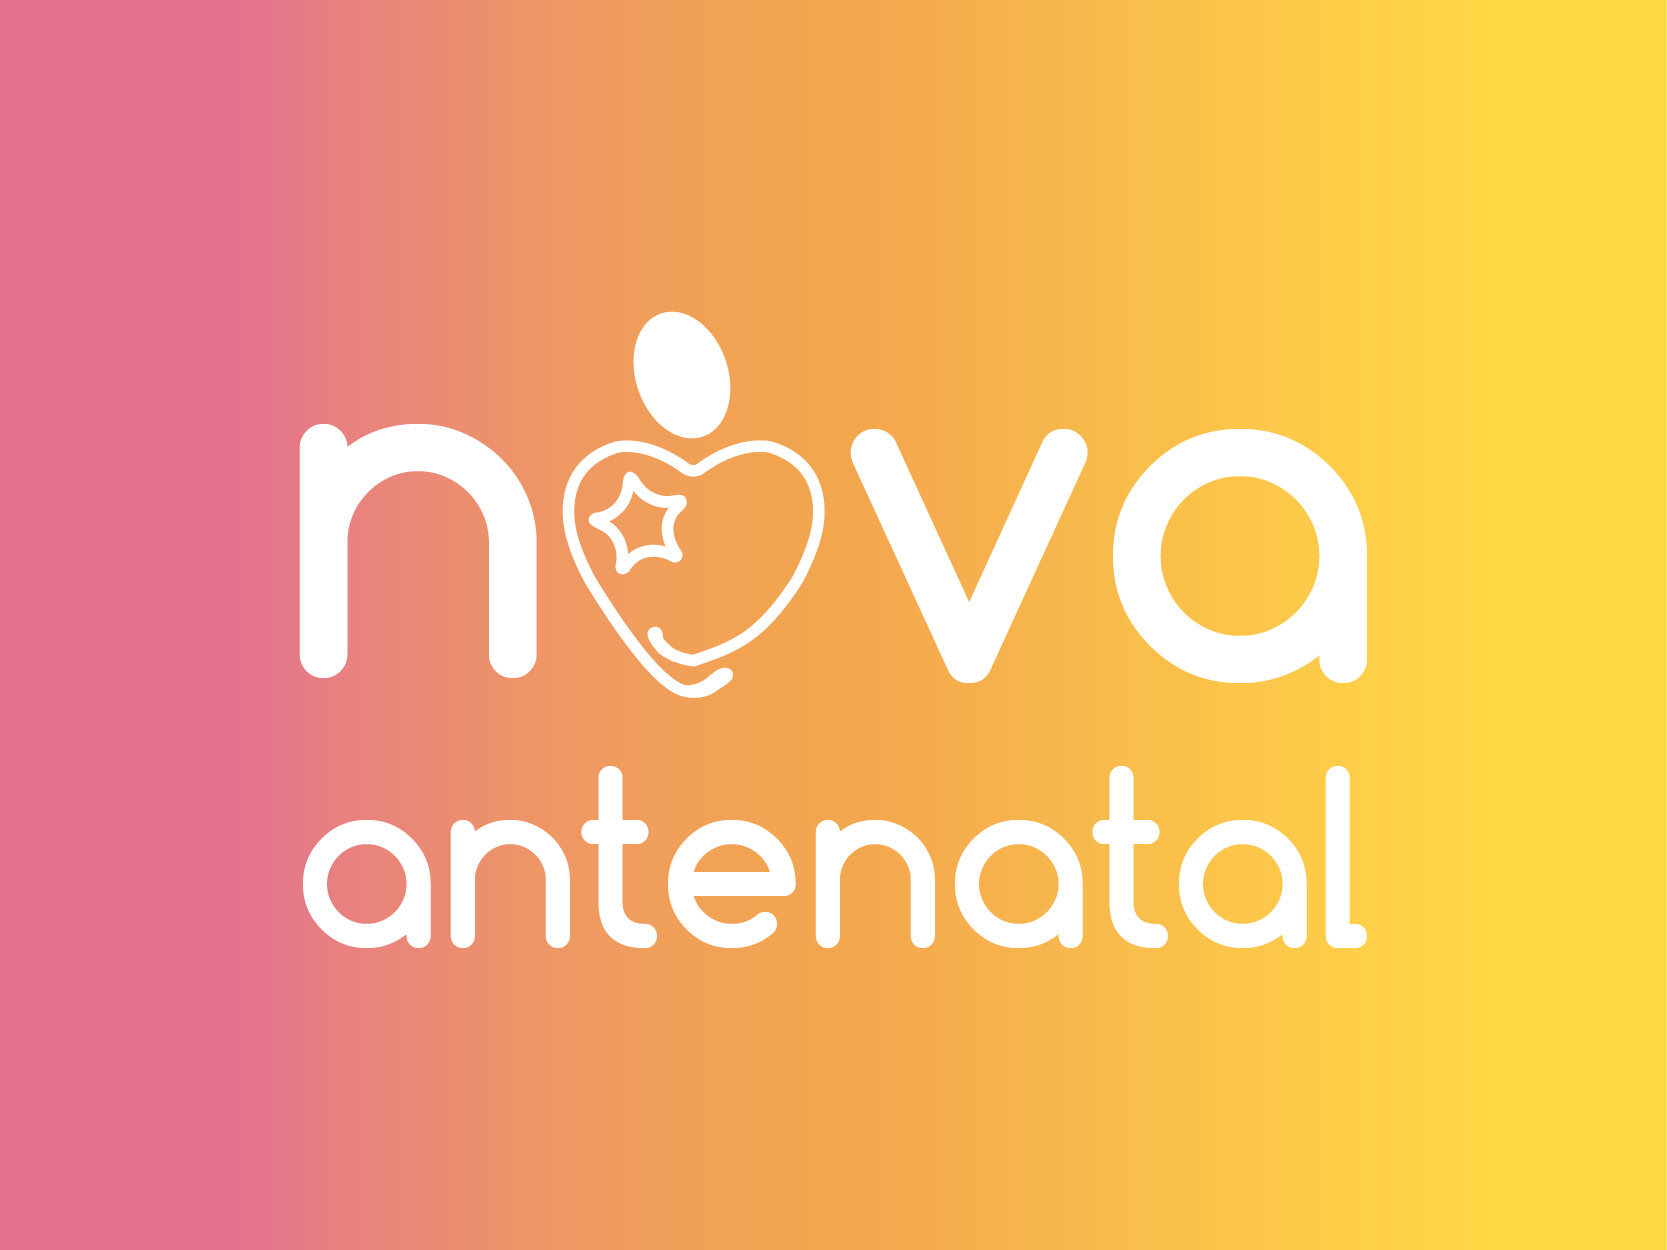 Hypnobirthing + Antenatal Classes for parents pregnant after a loss - Our classes have been designed for babyloss parents by babyloss parents to provide a safe, nurturing environment to reduce anxieties, involve the memory of your child who died whilst helping you to prepare to bring their sibling home.